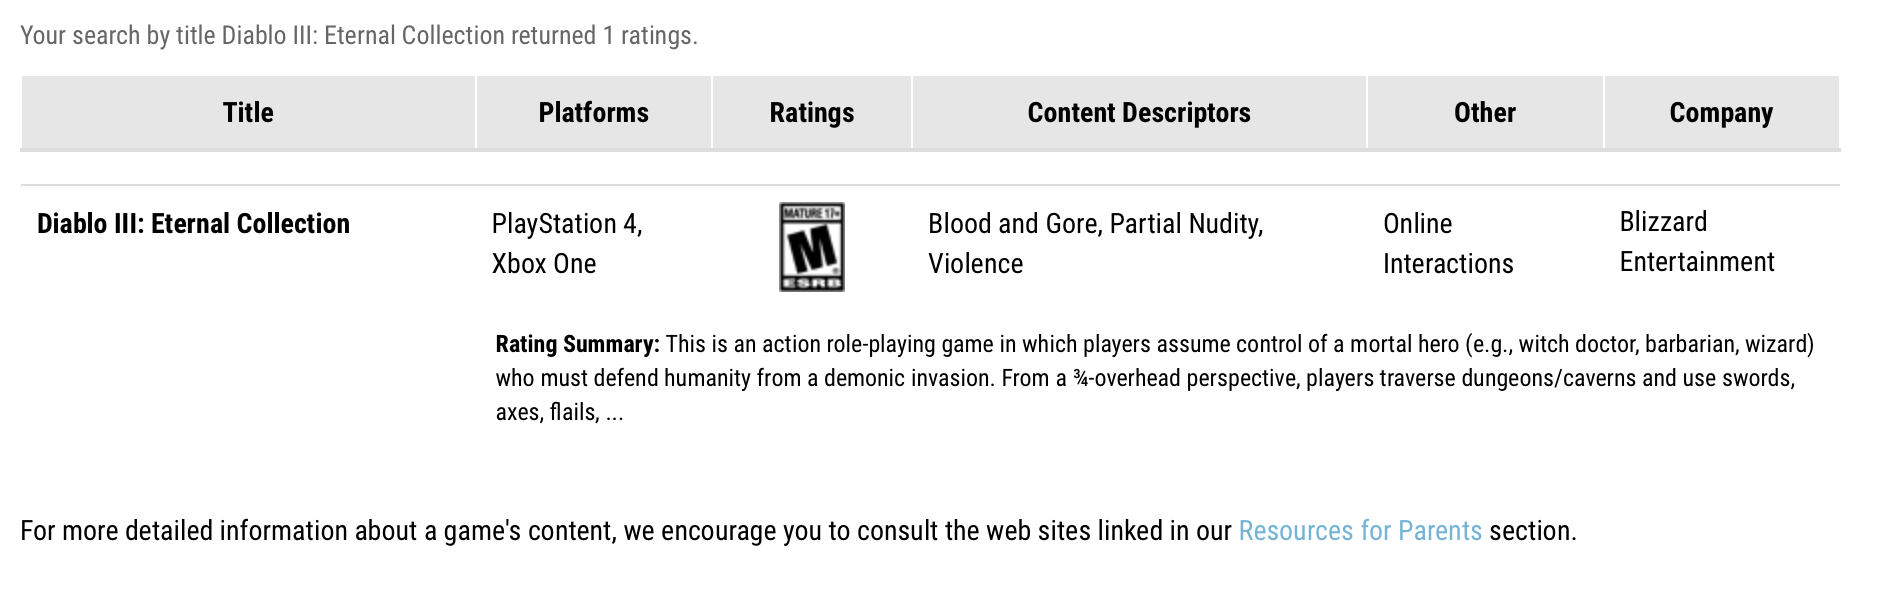 L'ESRB di Diablo III: Eternal Collection